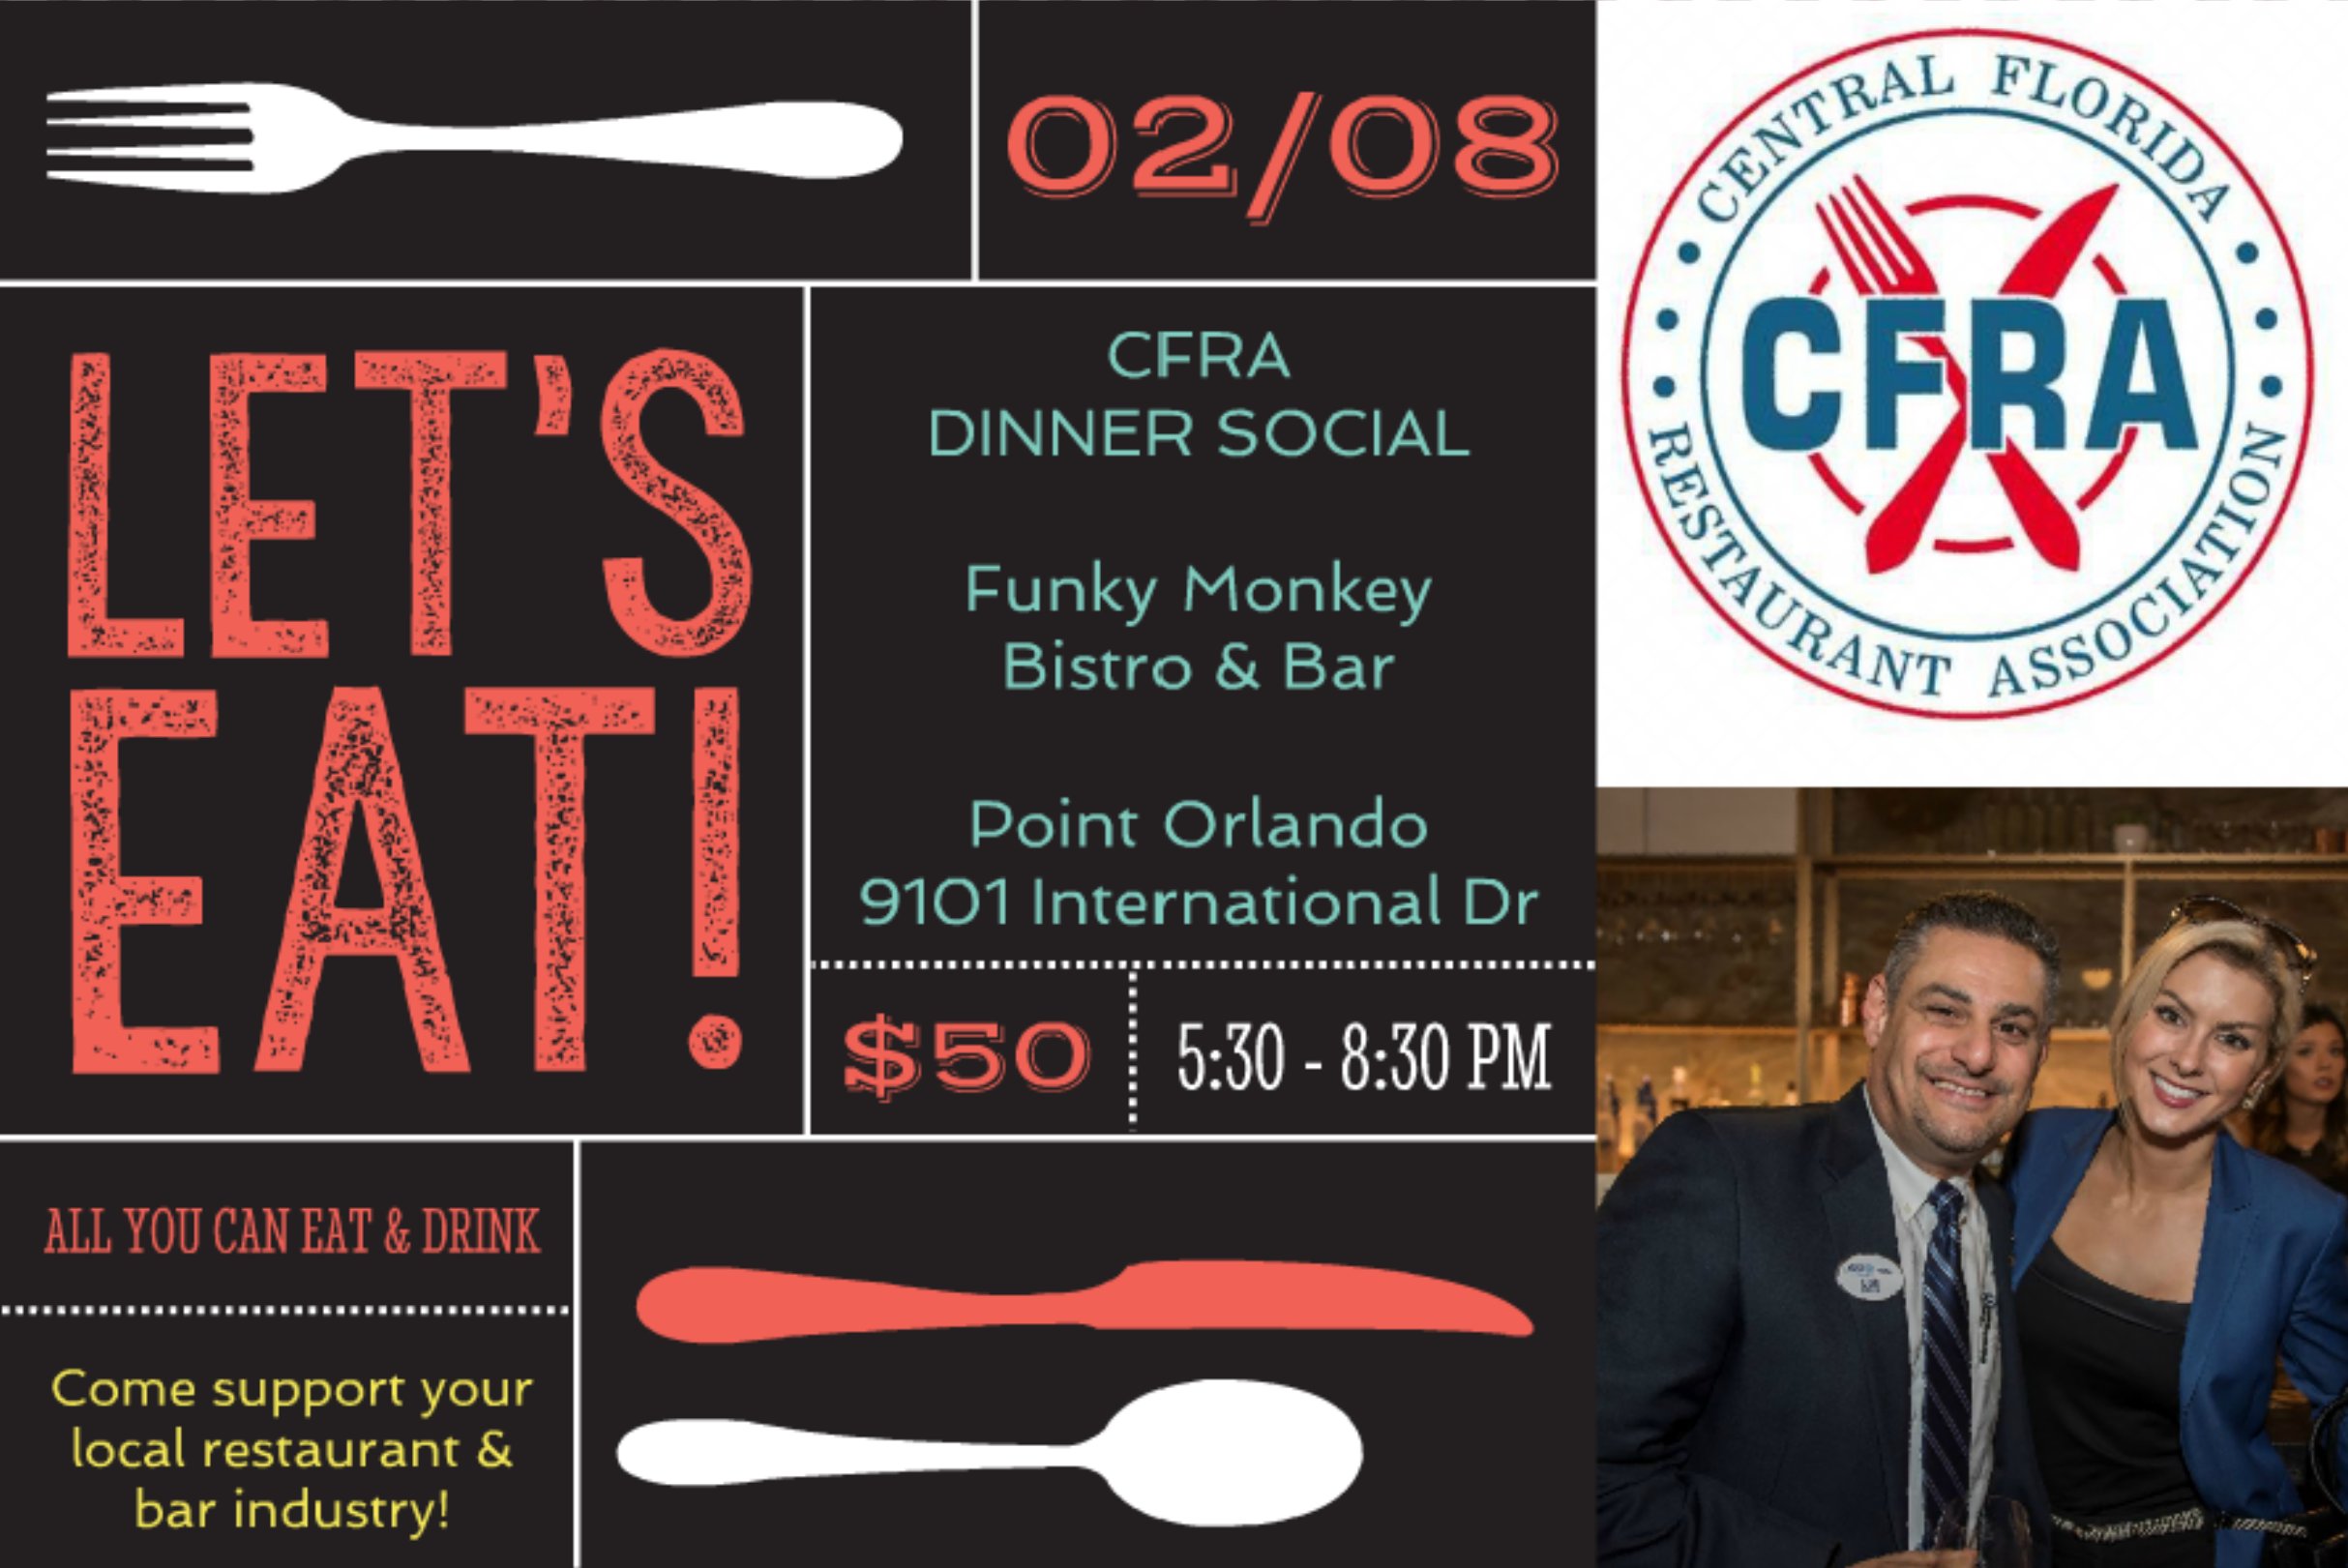 Inaugural Social Dinner for the CFRA Image